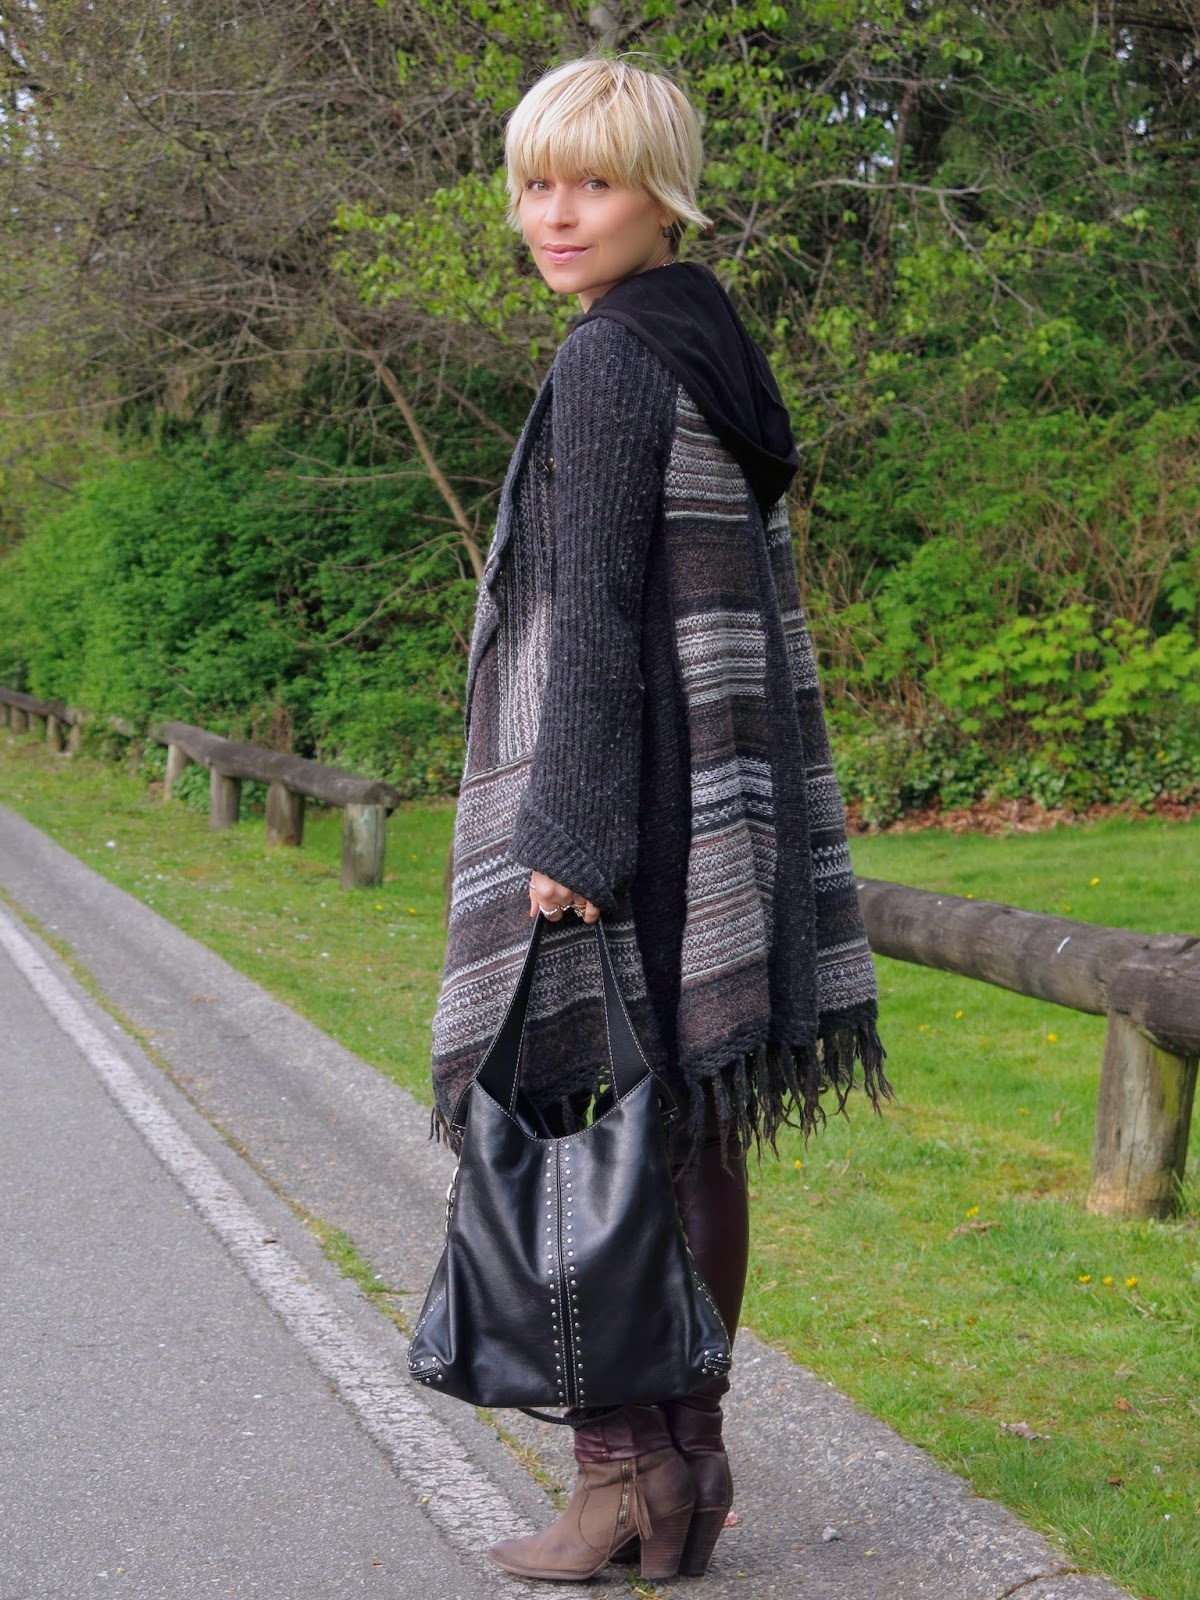 styling a fringy Free People cardigan with burgundy faux-leather leggings